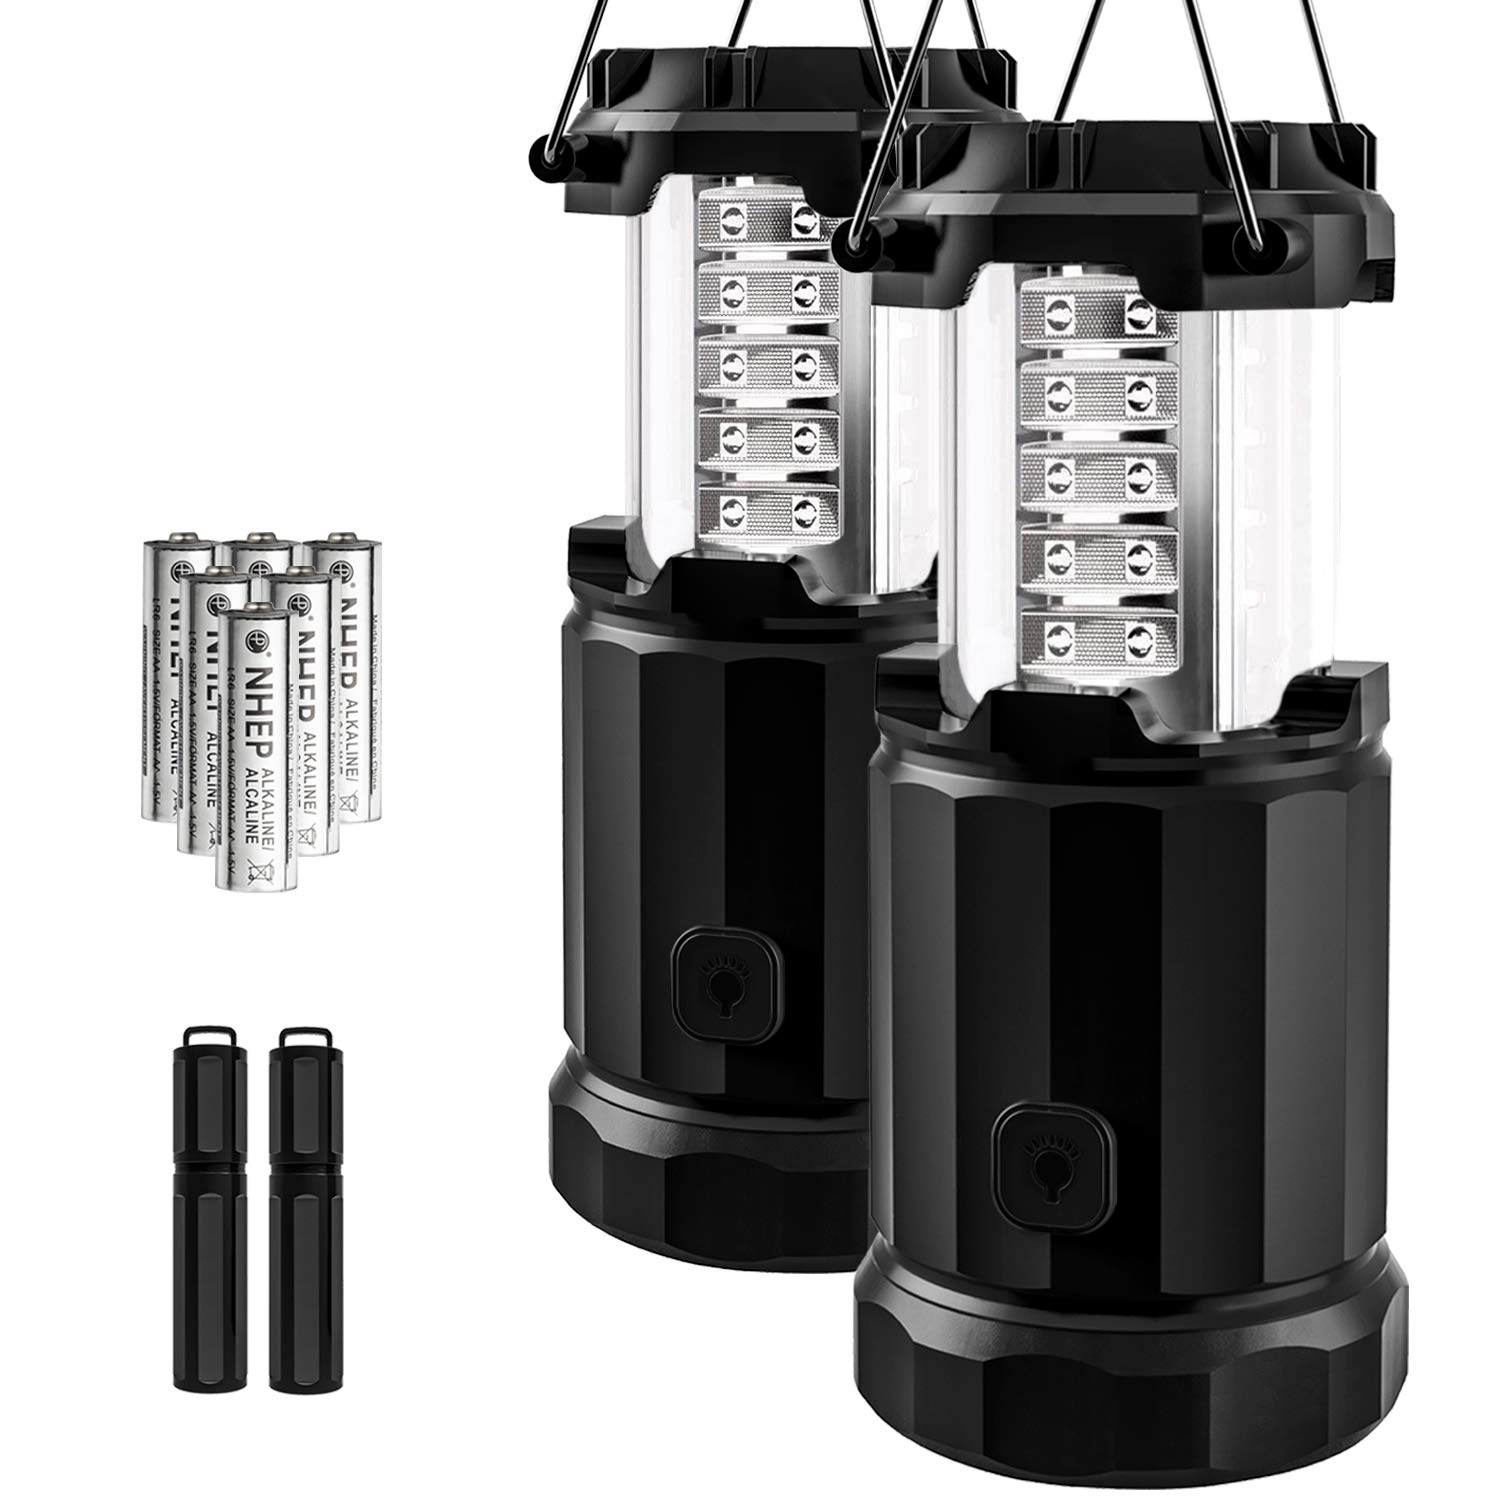 Etekcity 2 Pack Portable LED Camping Lantern Flashlights 6 AA Batteries - Survival Kit Emergency, Hurricane, Outage (Black, Collapsible) (CL30) by Etekcity